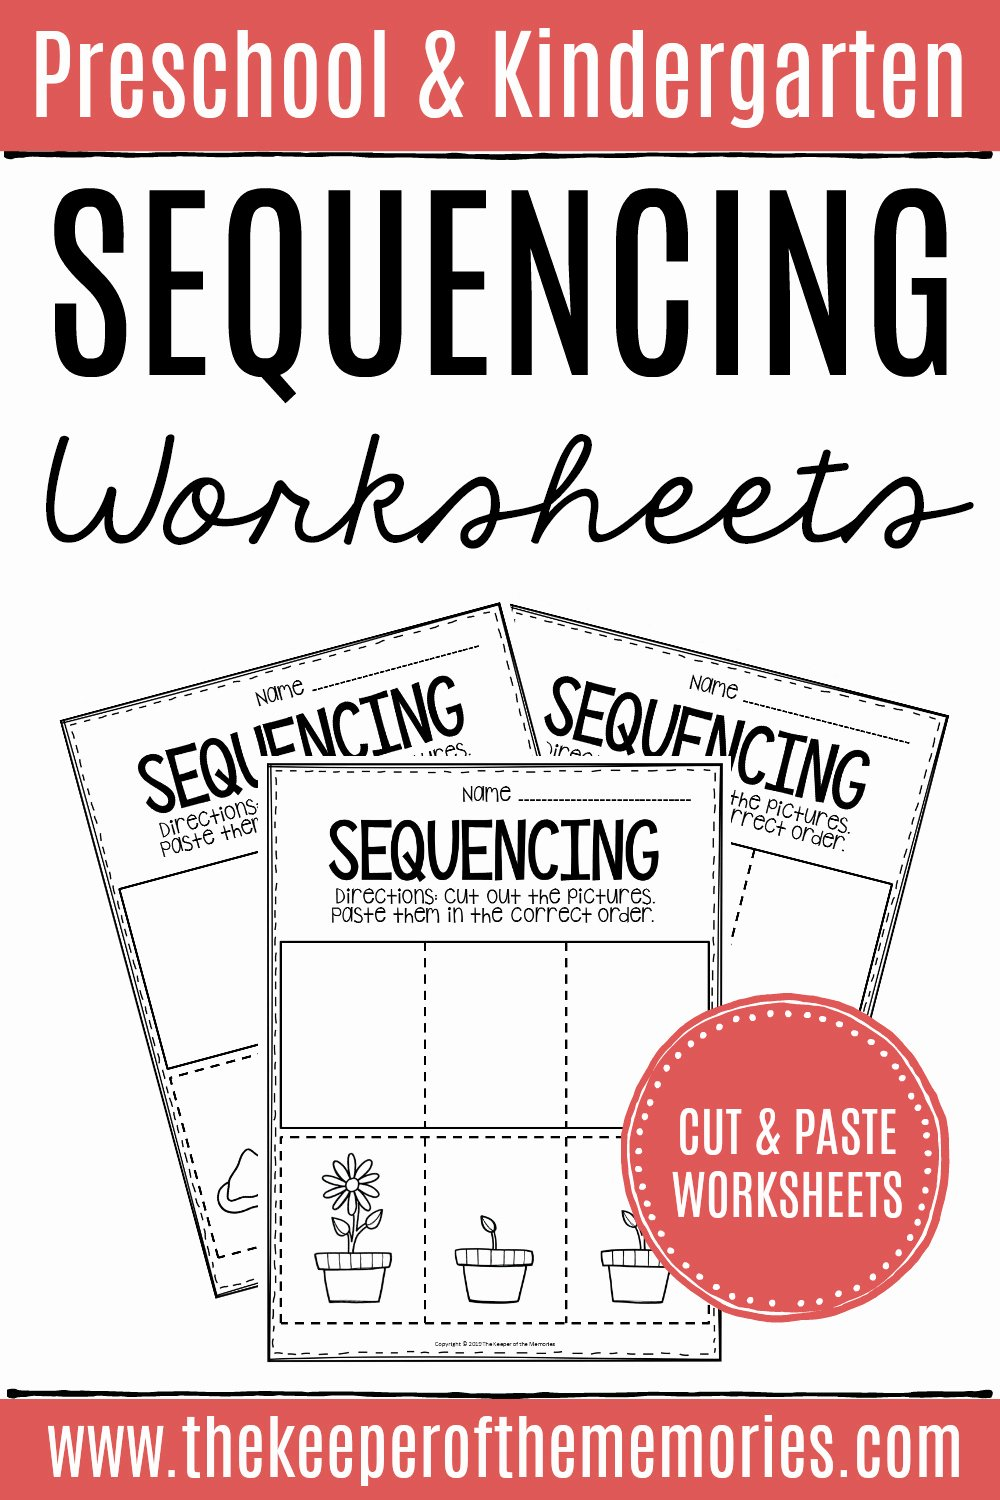 Sequencing events Worksheets for Preschoolers Unique 3 Step Sequencing Worksheets the Keeper Of the Memories